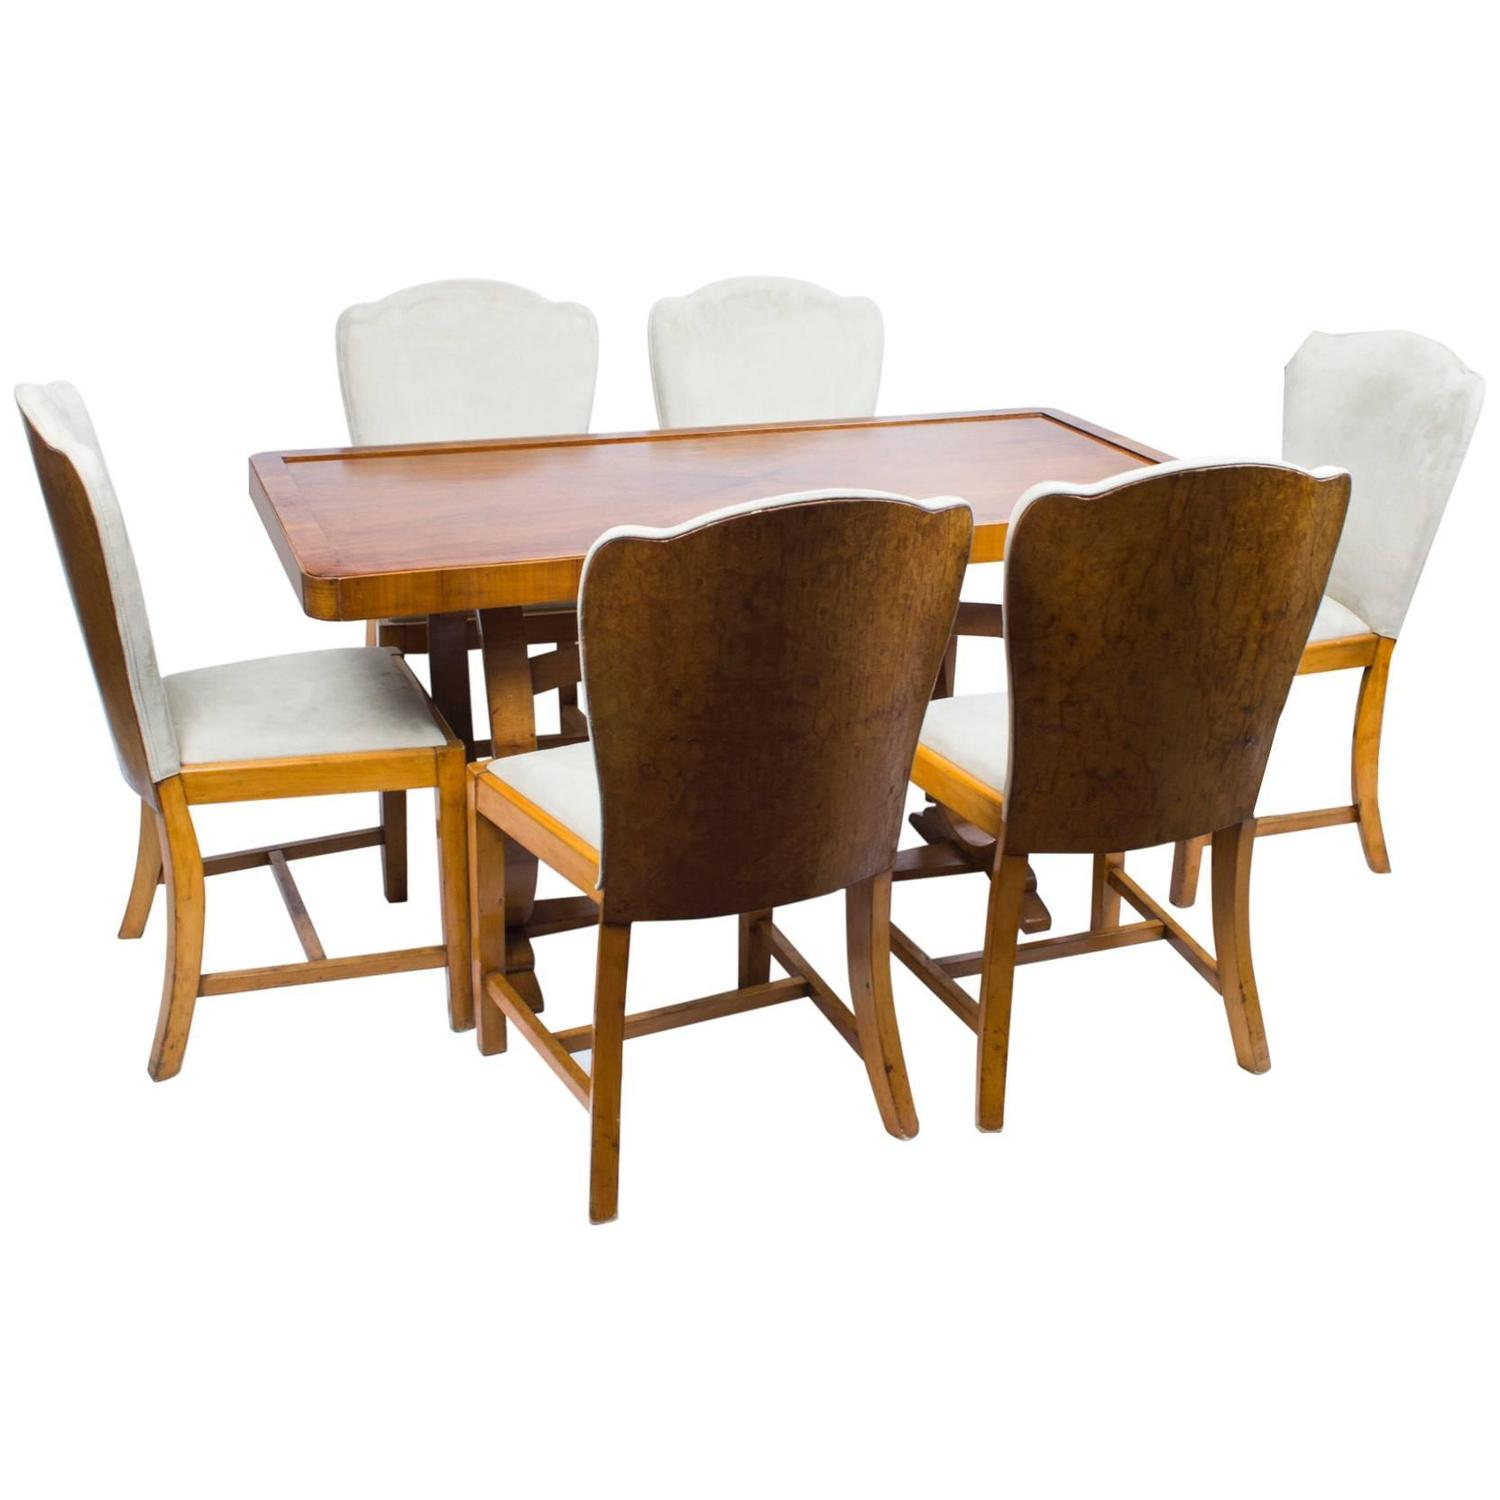 Antique Art Deco Dining Table and Six Chairs circa 1930